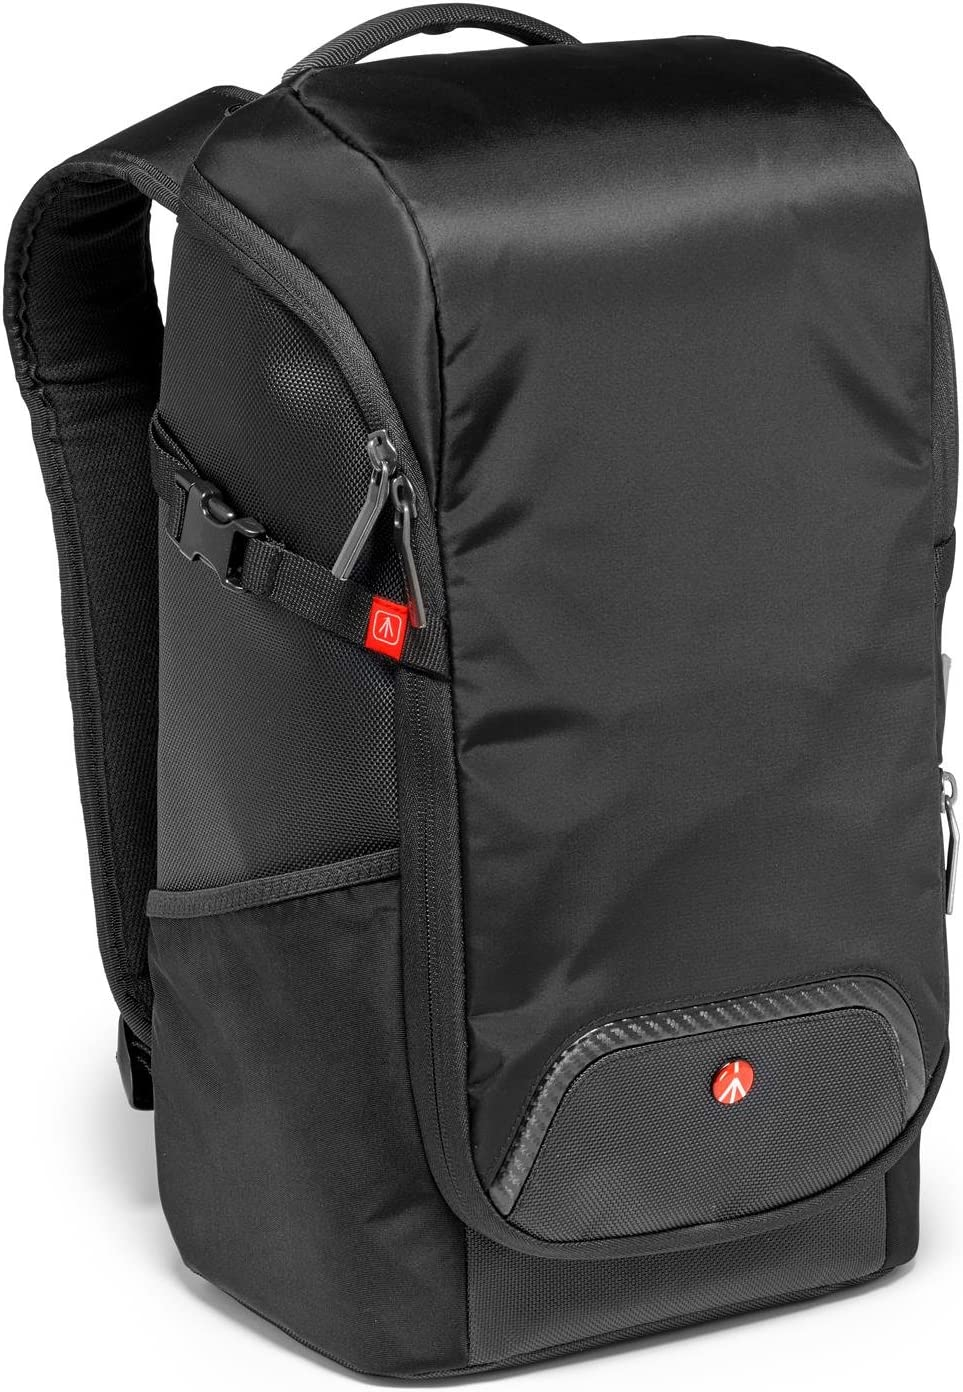 Manfrotto MB MA-BP-C1 Lightweight Advanced Camera Backpack Compact 1 for CSC, Black